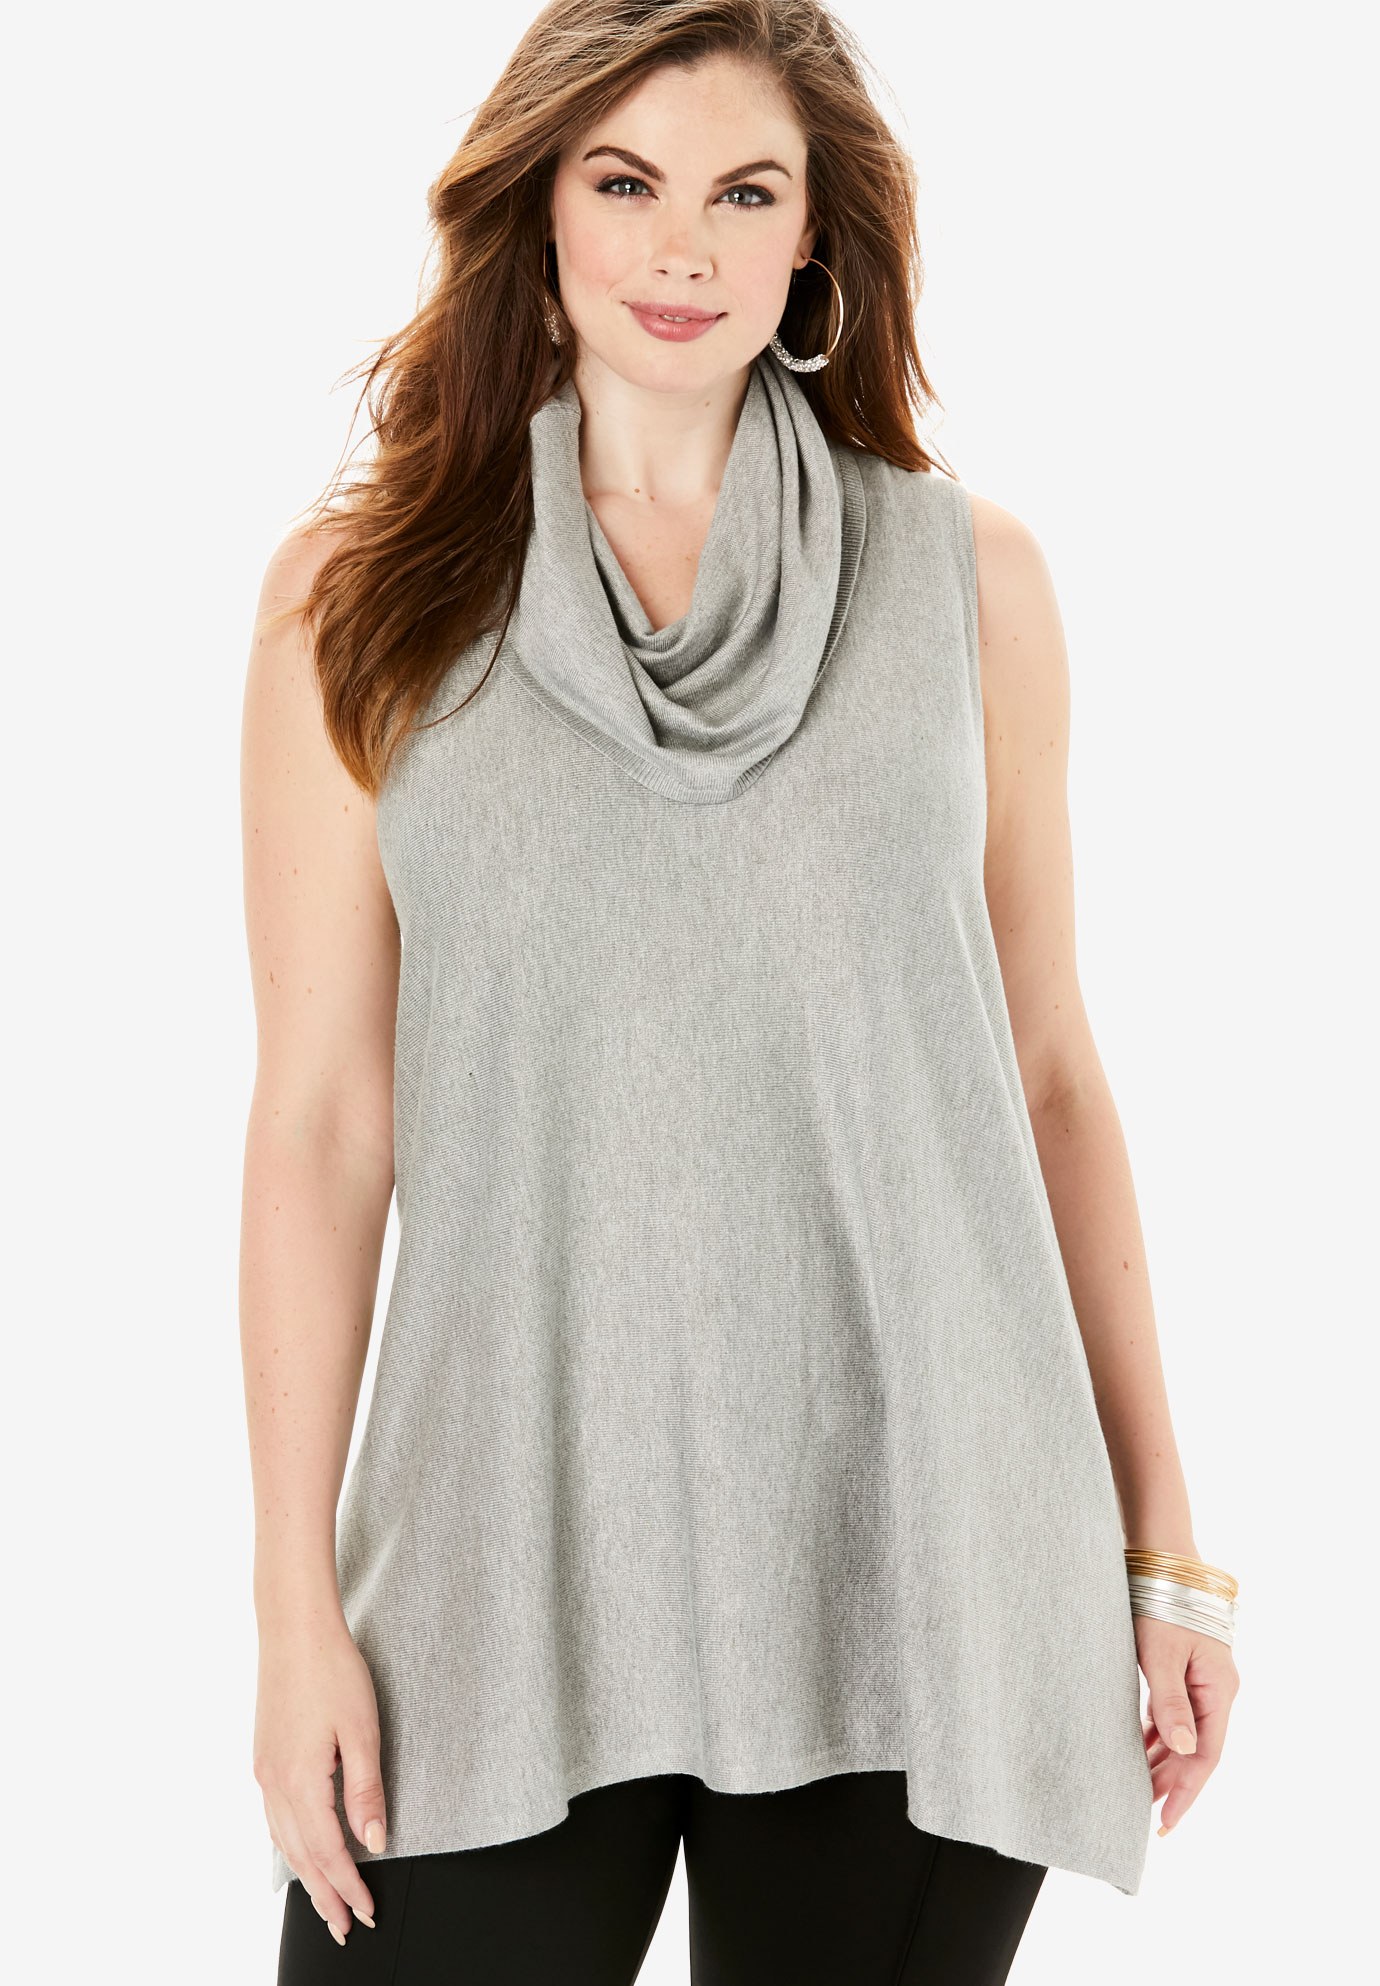 Fine Gauge Sleeveless Sweater with Cowl Neck,